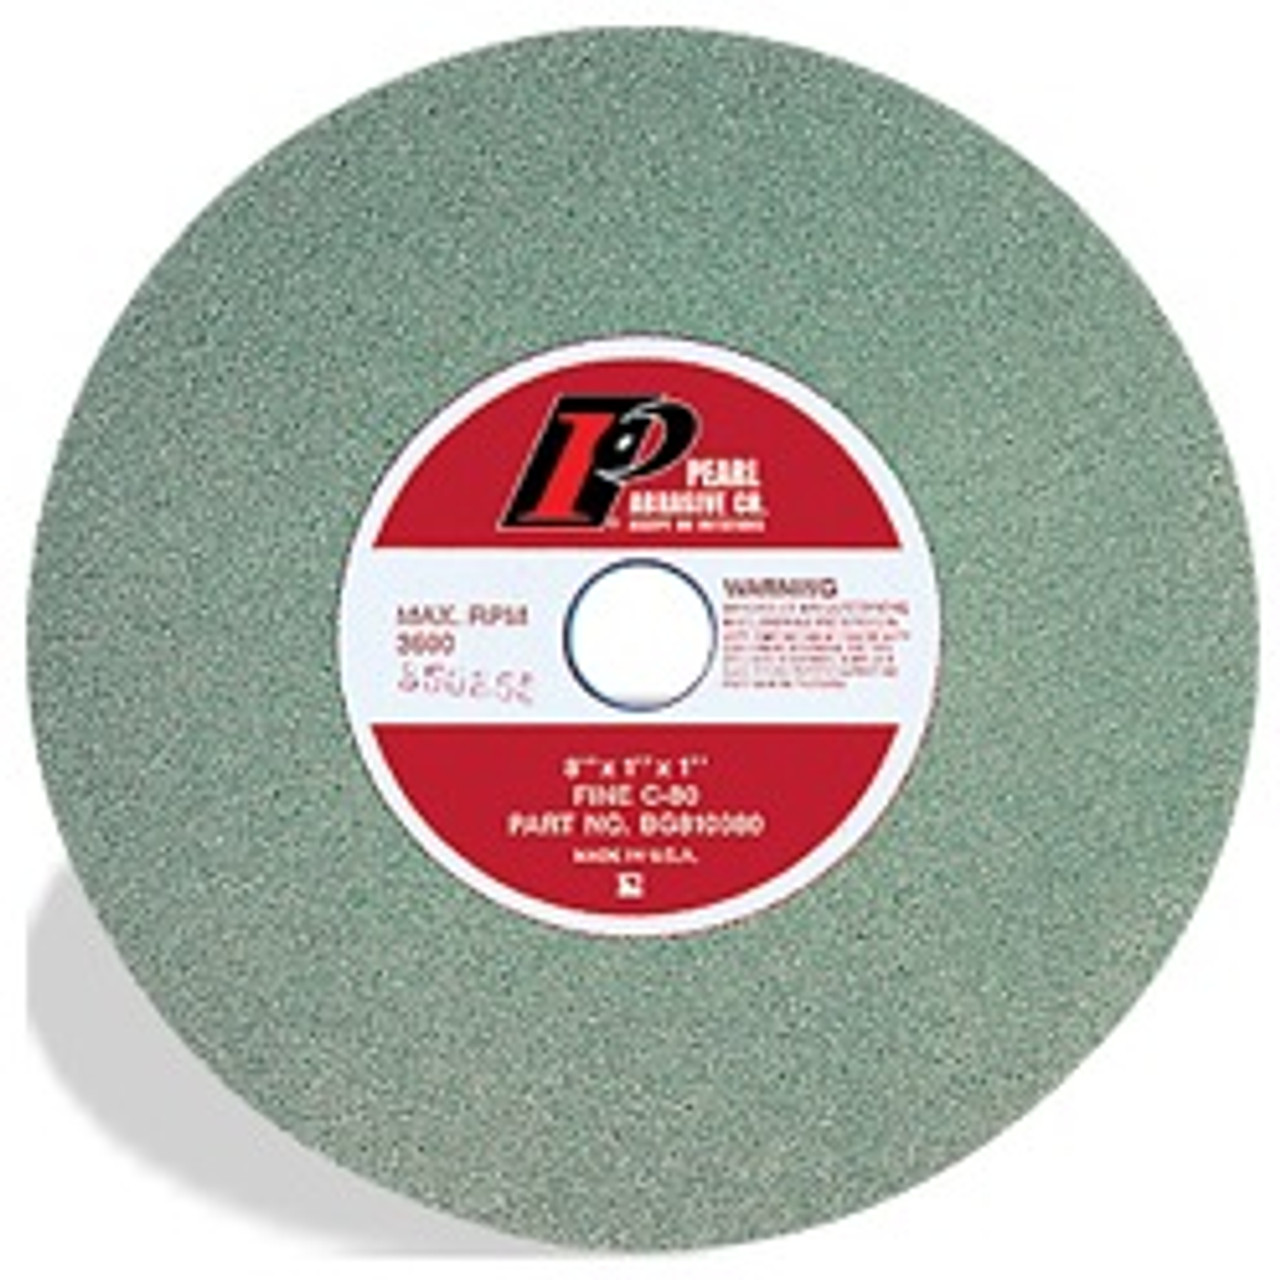 "Green SC Bench Grinding Wheels for Metal, 6"" x 1"" x 1"", Type 1 Shape C120"